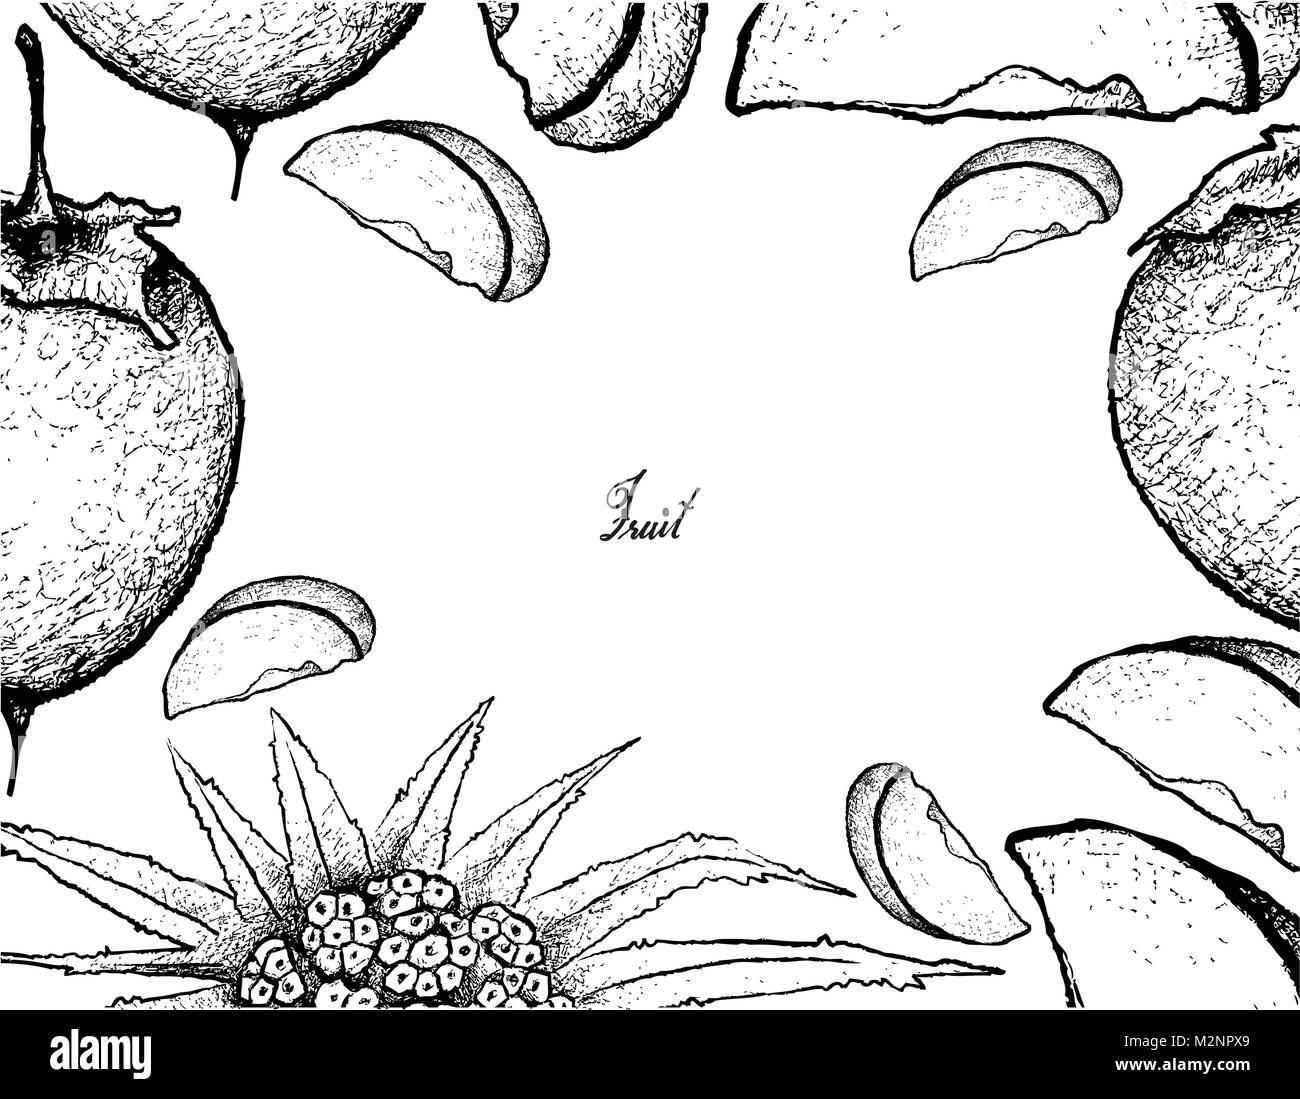 Fresh Fruit, Illustration of Hand Drawn Sketch Ripe and Sweet Kaki or Japanese Persimmon and Pandanus Fruits Isolated - Stock Image